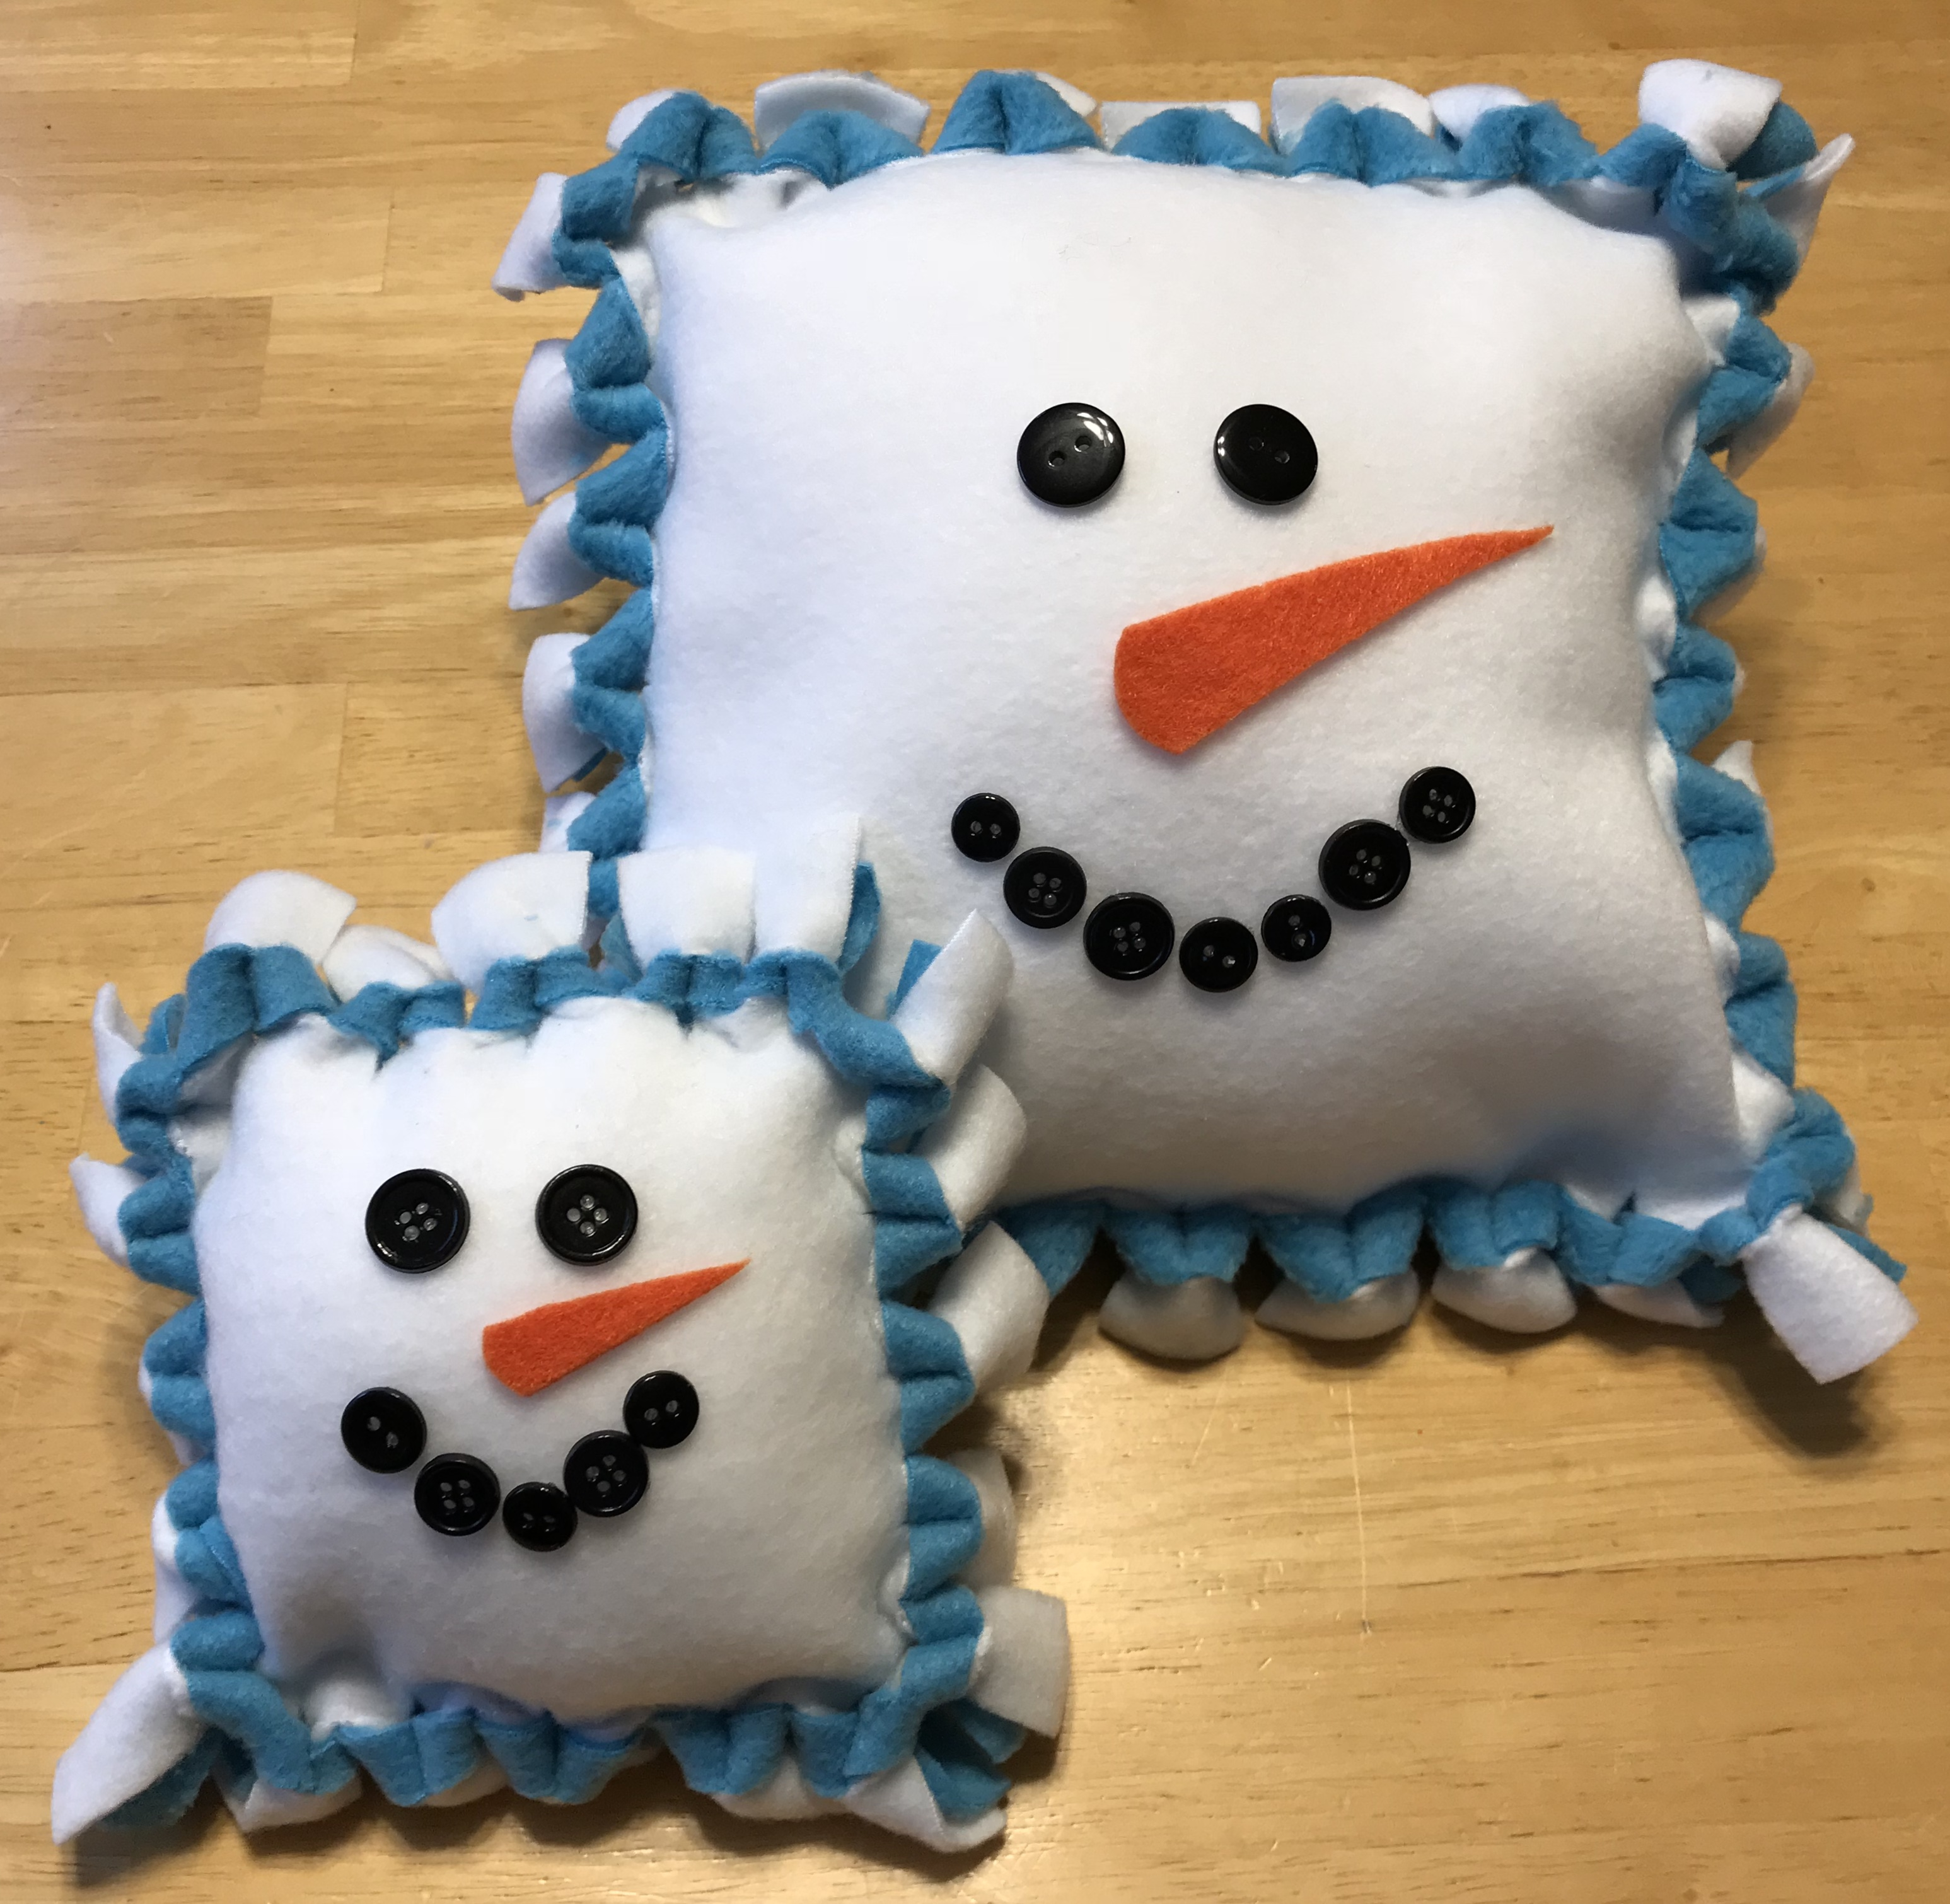 Snowman crafts archives fun family crafts no sew snowman pillow jeuxipadfo Gallery